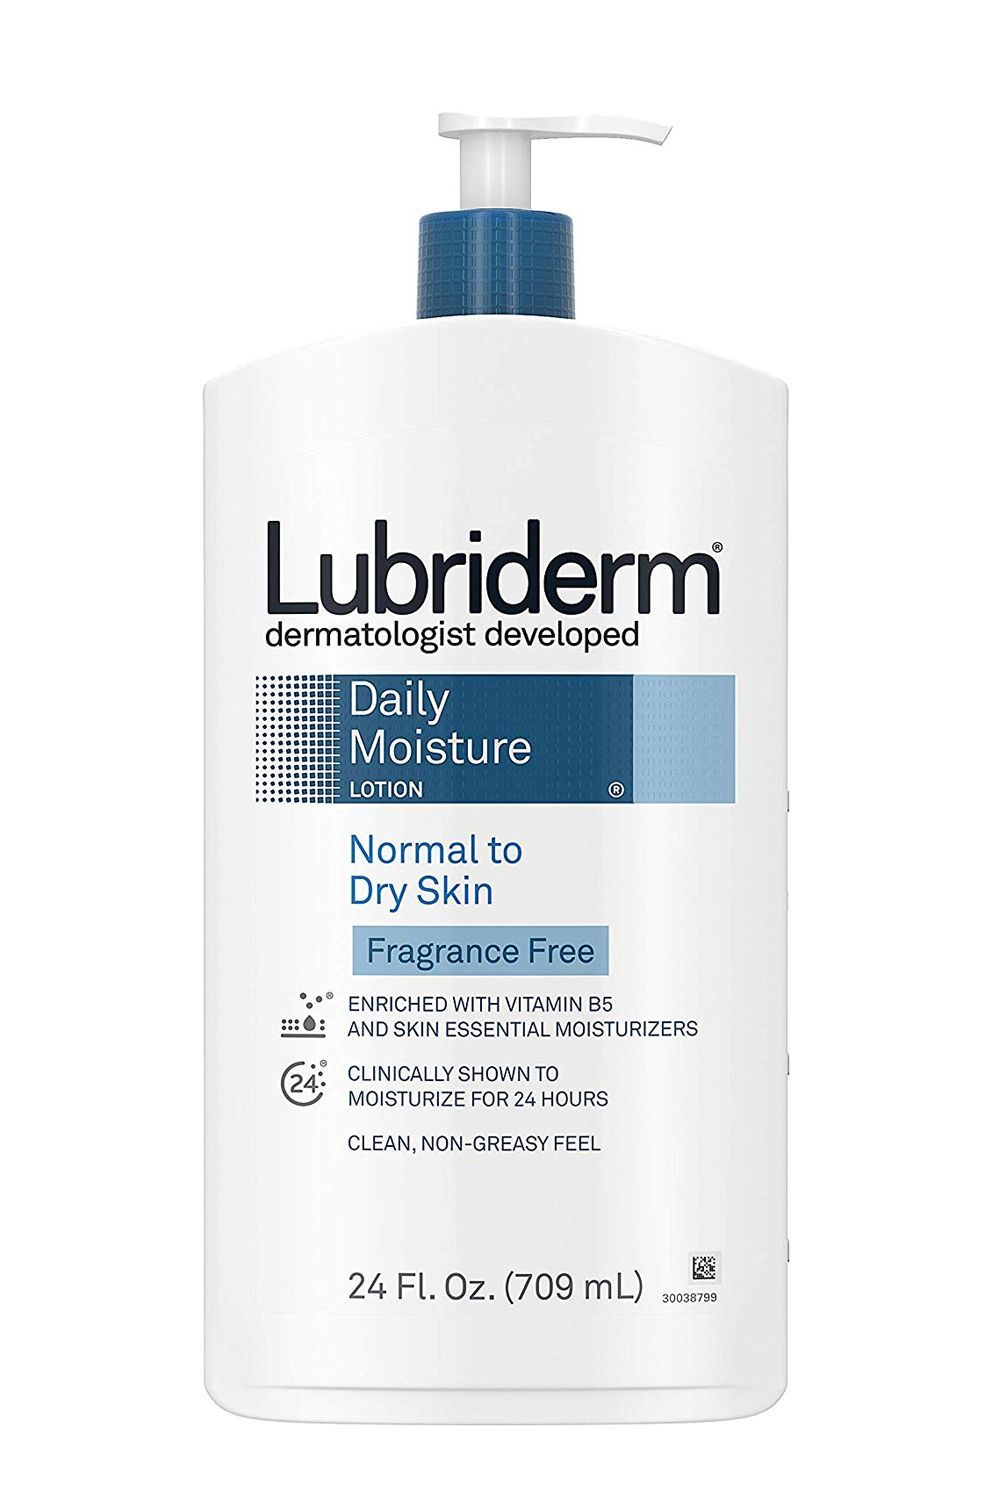 10 Best Tattoo Lotions For Healing And Maintenance In 2021 47 likes · 2 talking about this. lubriderm daily moisture lotion